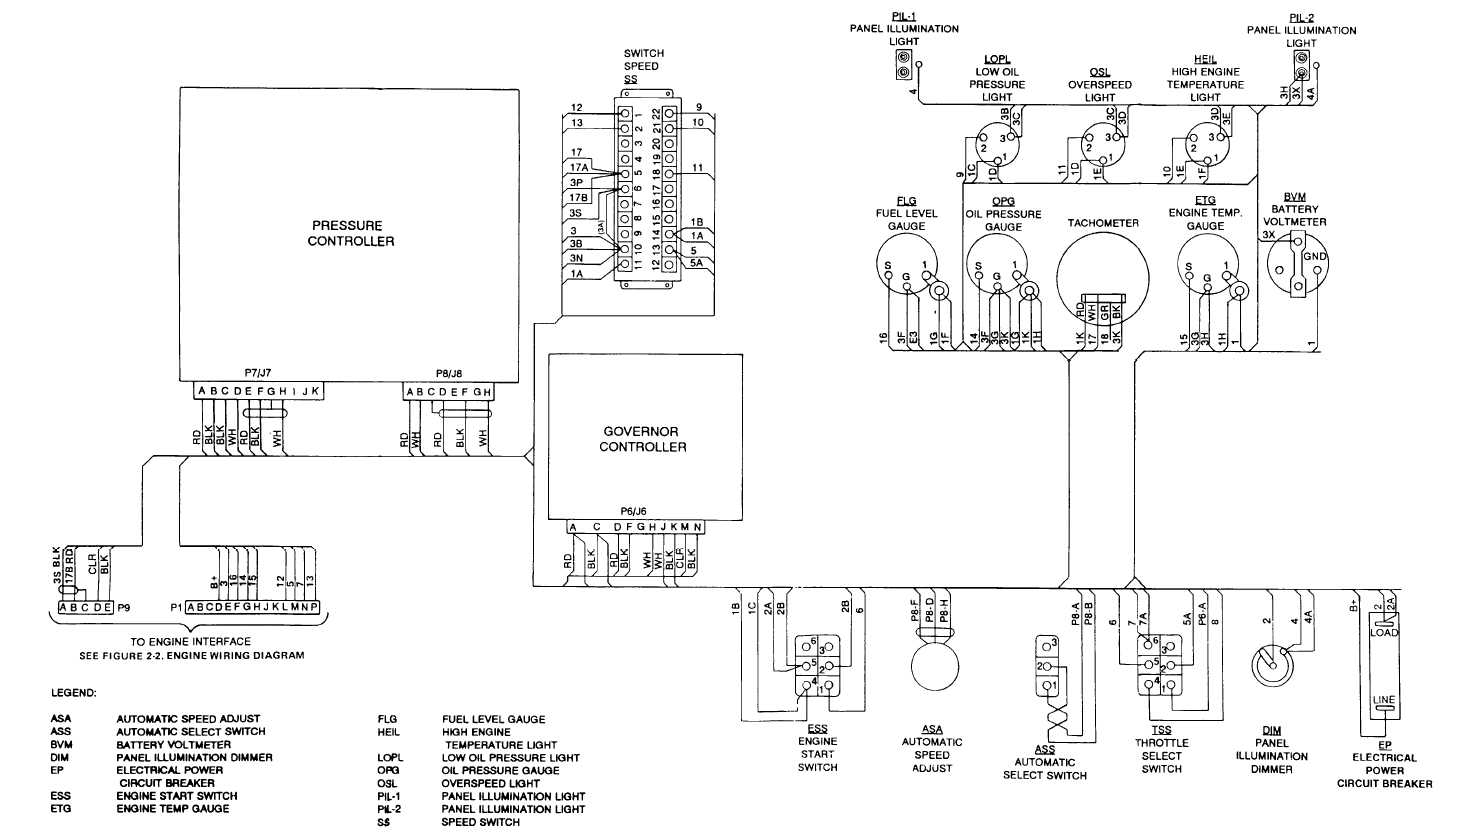 TM 10 4320 315 24_18_1 figure 2 1 control panel wiring diagram (sheet 1 of 4) vcb panel wiring diagram at reclaimingppi.co